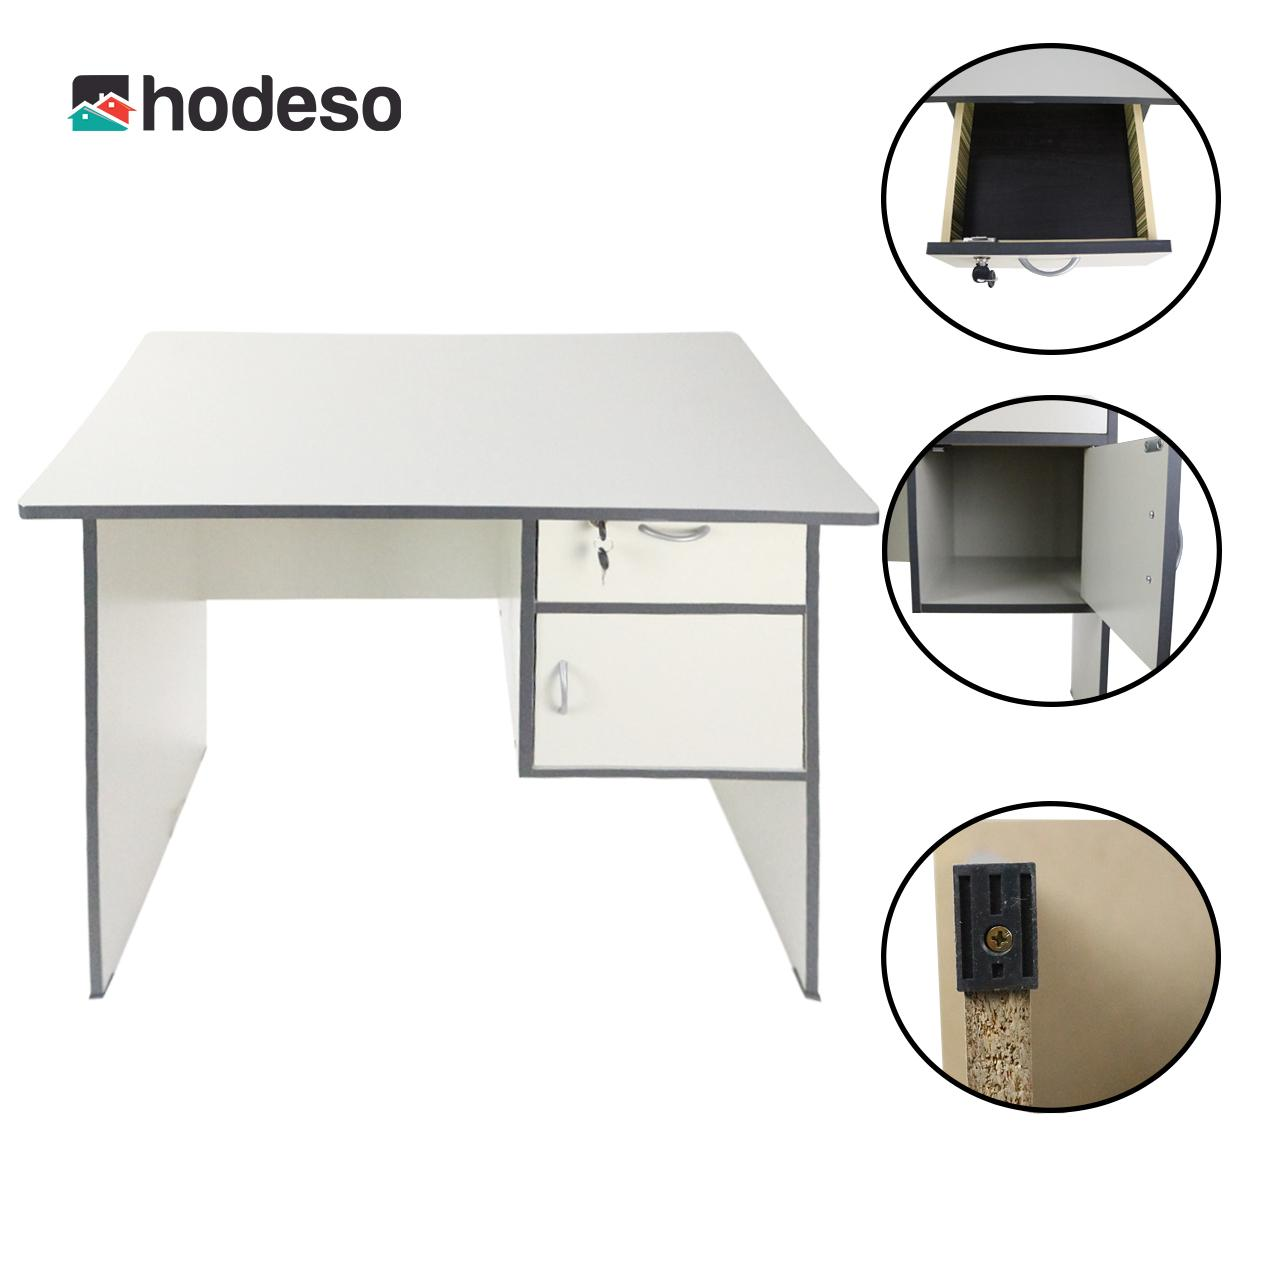 Hodeso JIT 01919 Office Table / Computer Table